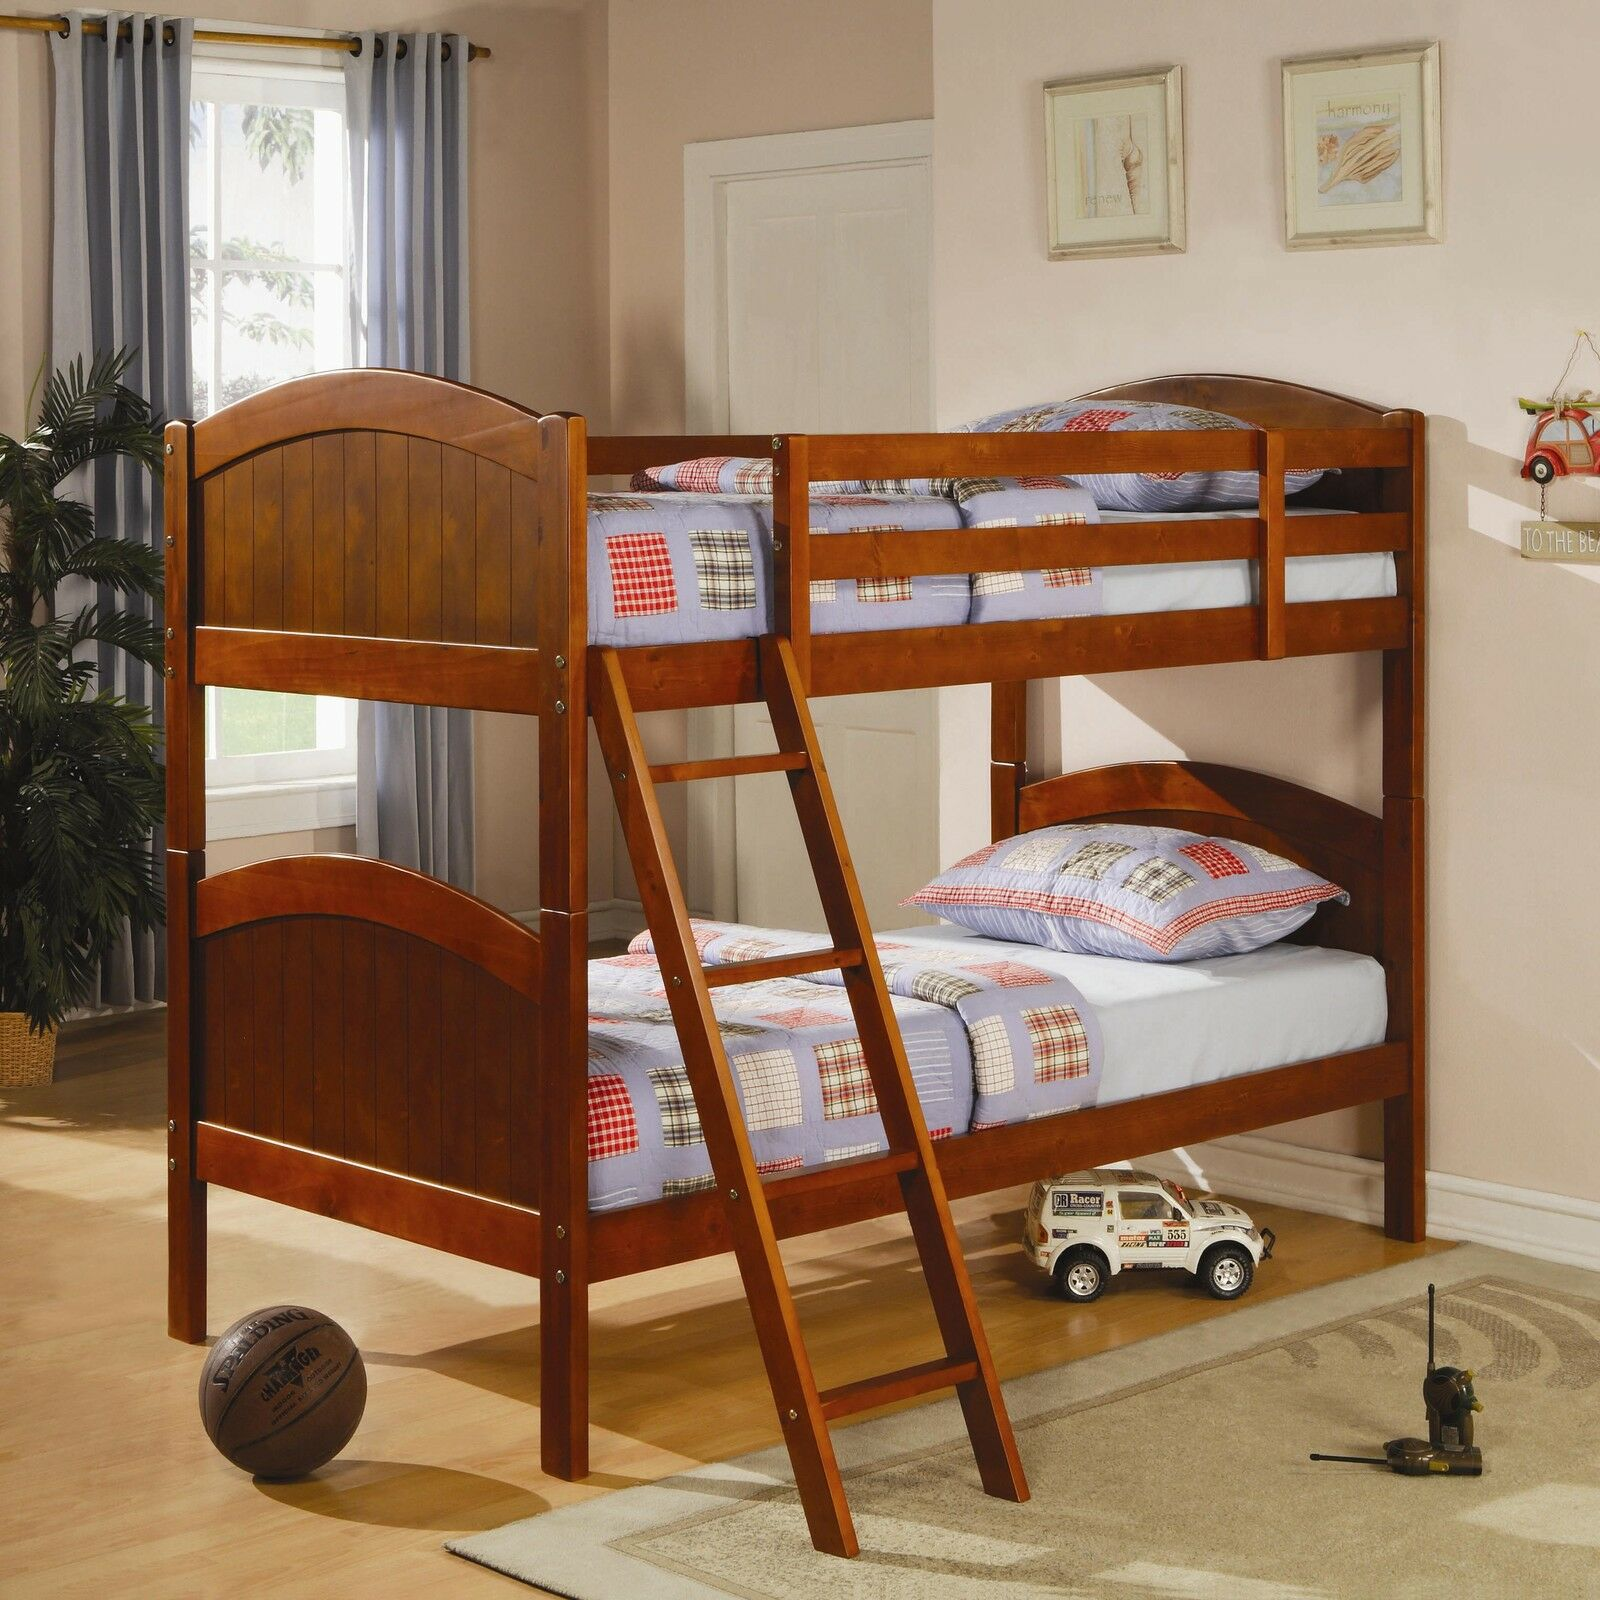 Kids Bed Buying Guide